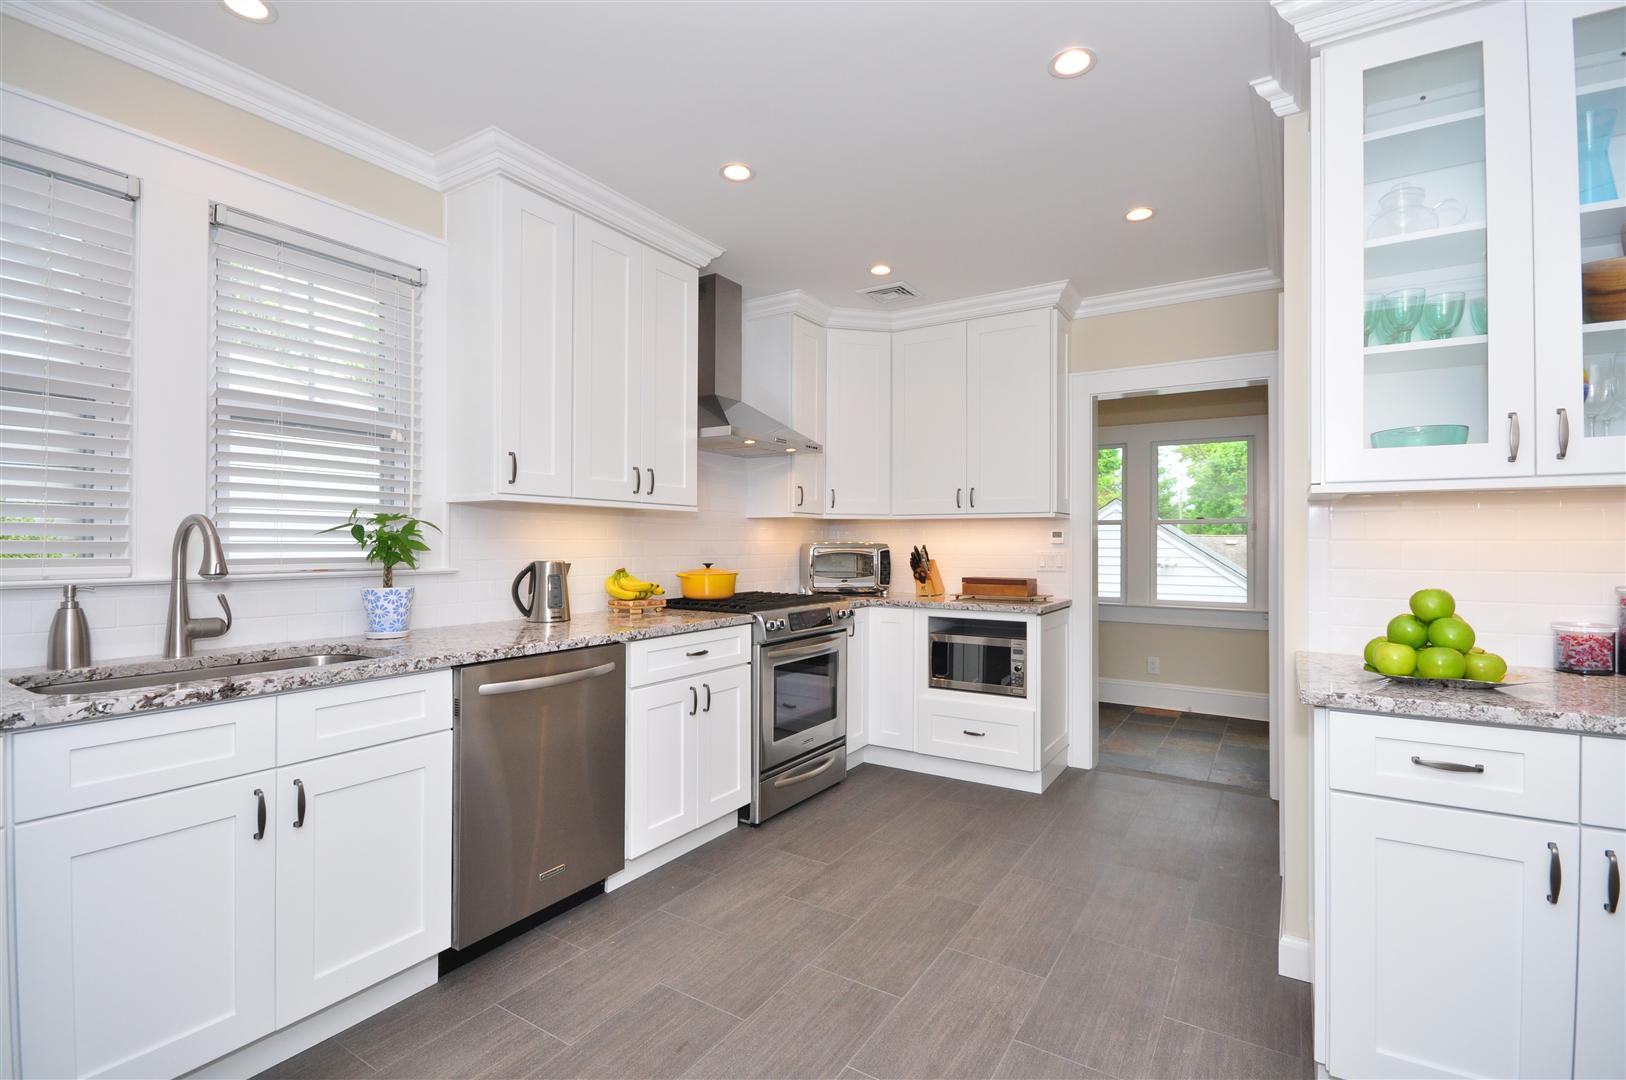 Complete kitchen renovations from 9 995